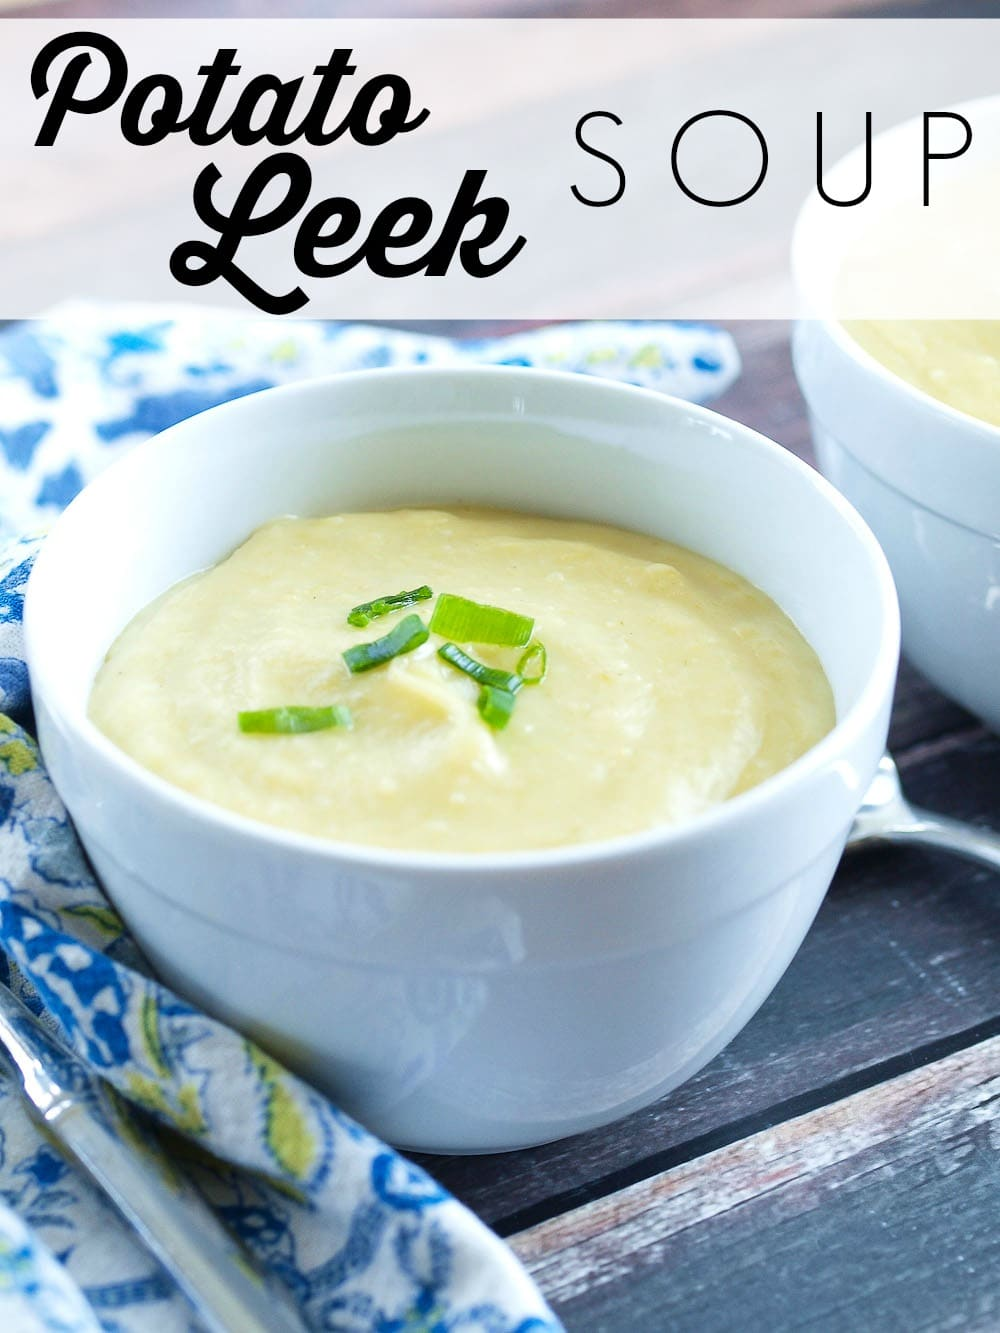 Easy, Delicious, and healthy Potato Leek Soup Recipe